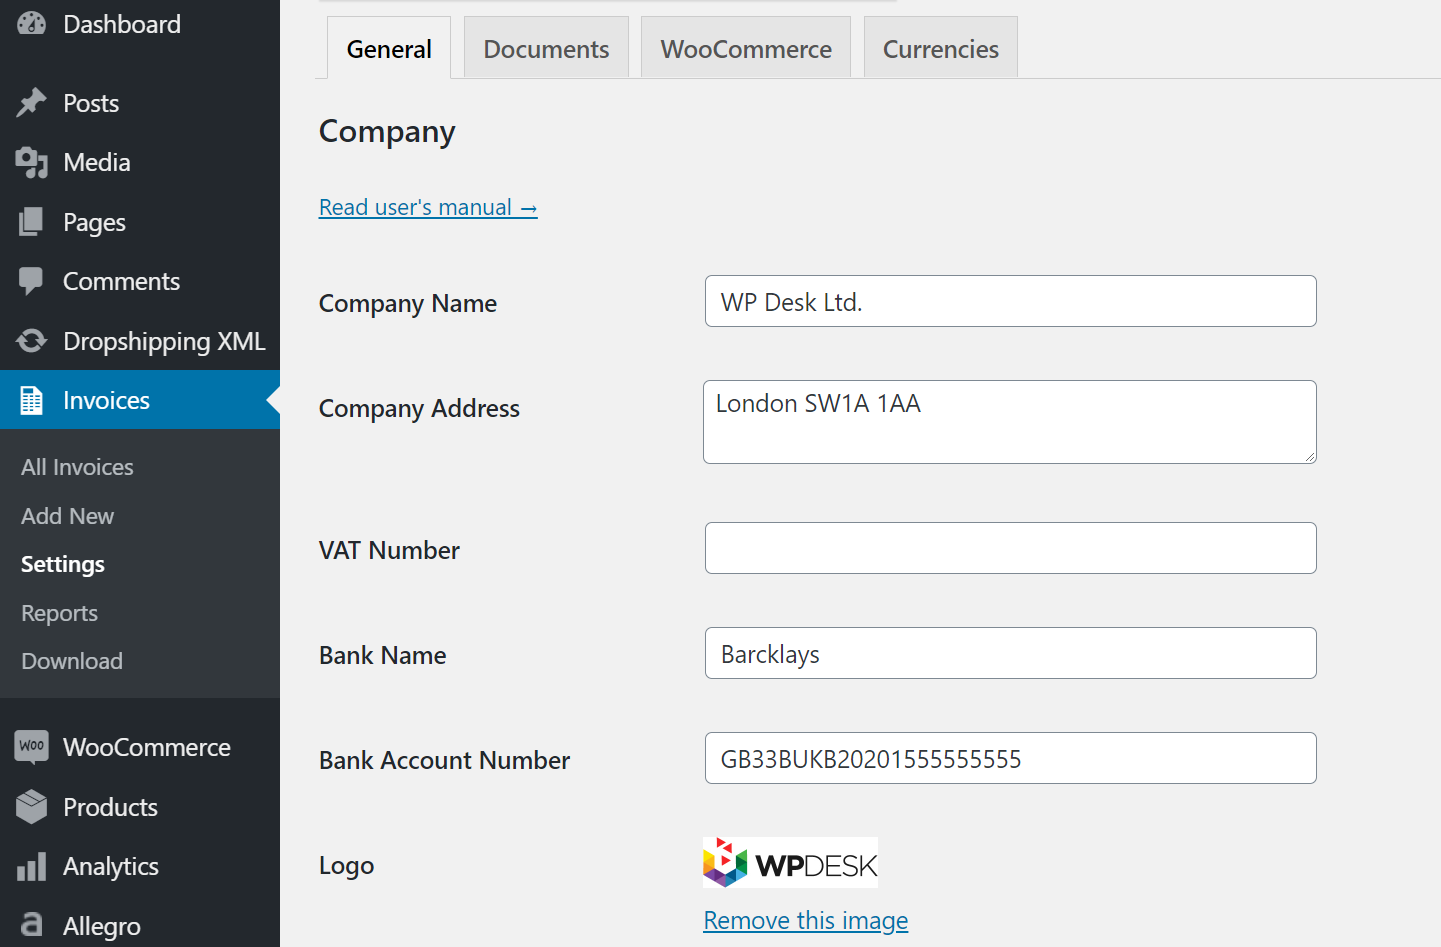 Flexible Invoices for WooCommerce and WordPress Company Settings